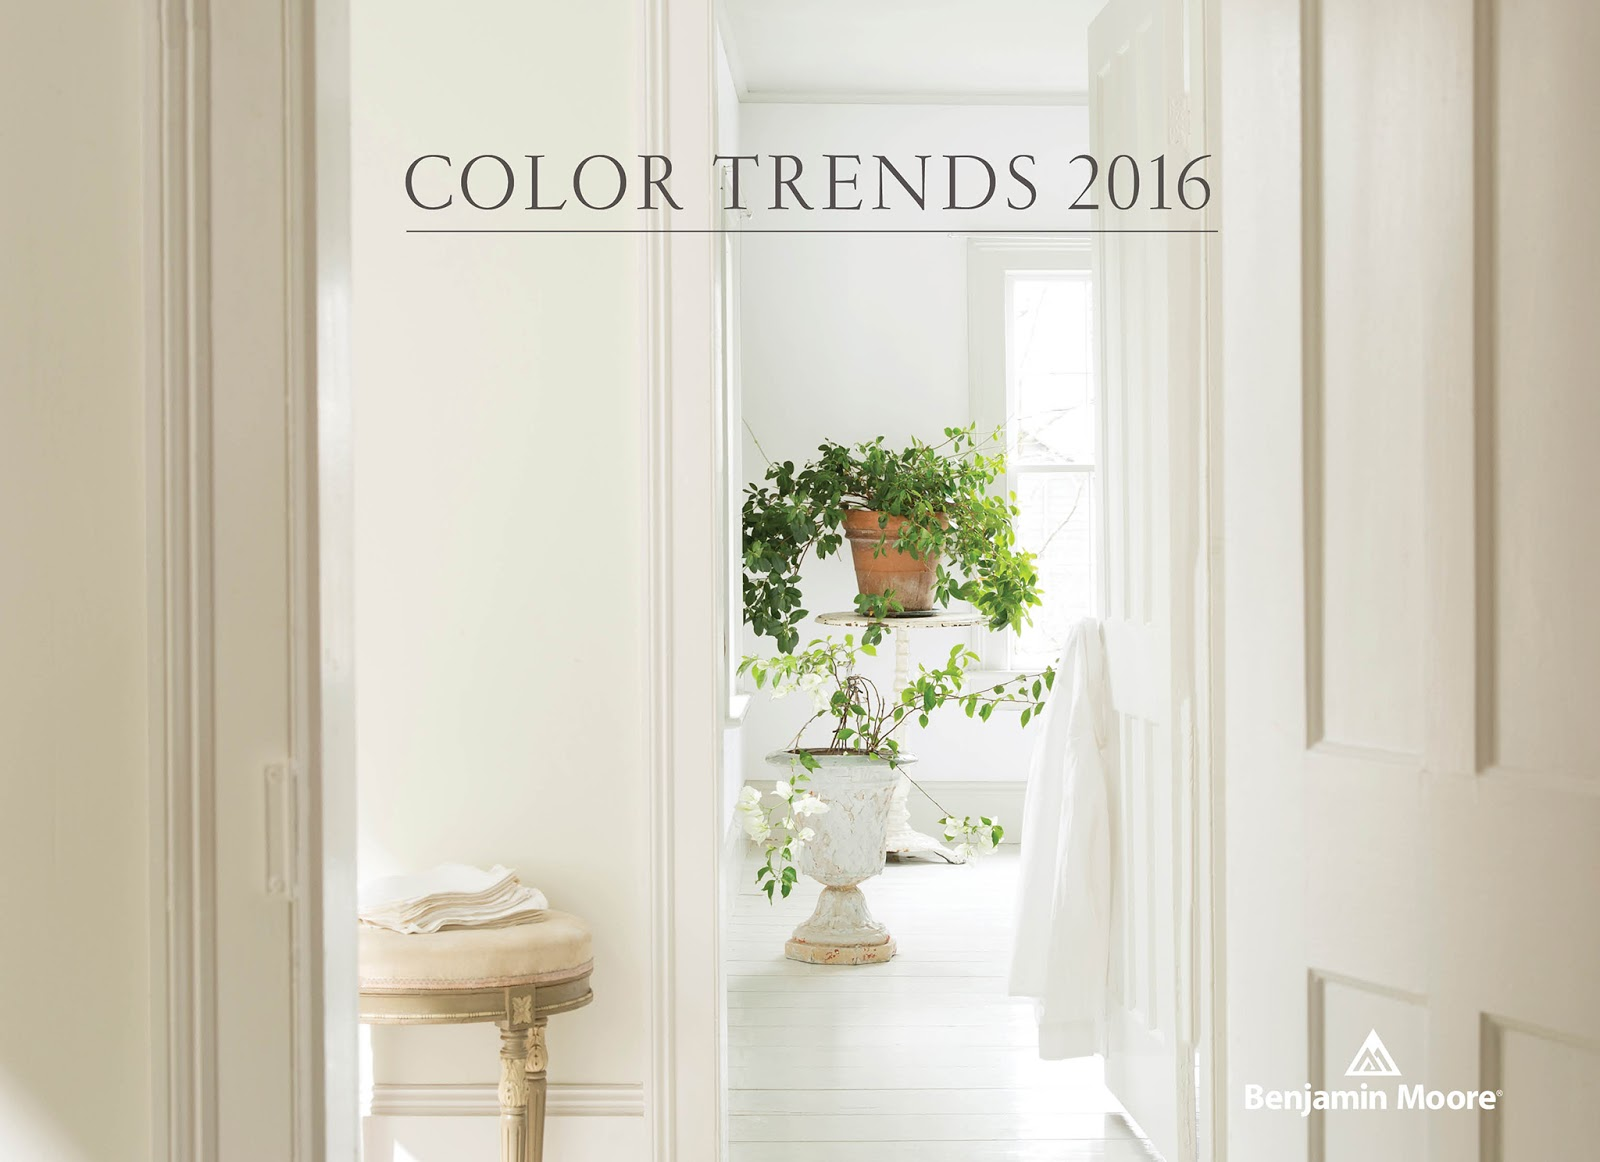 Color Leader Reveals Color Trends 2016, Highlighting White As A Timeless  And Versatile Design Statement